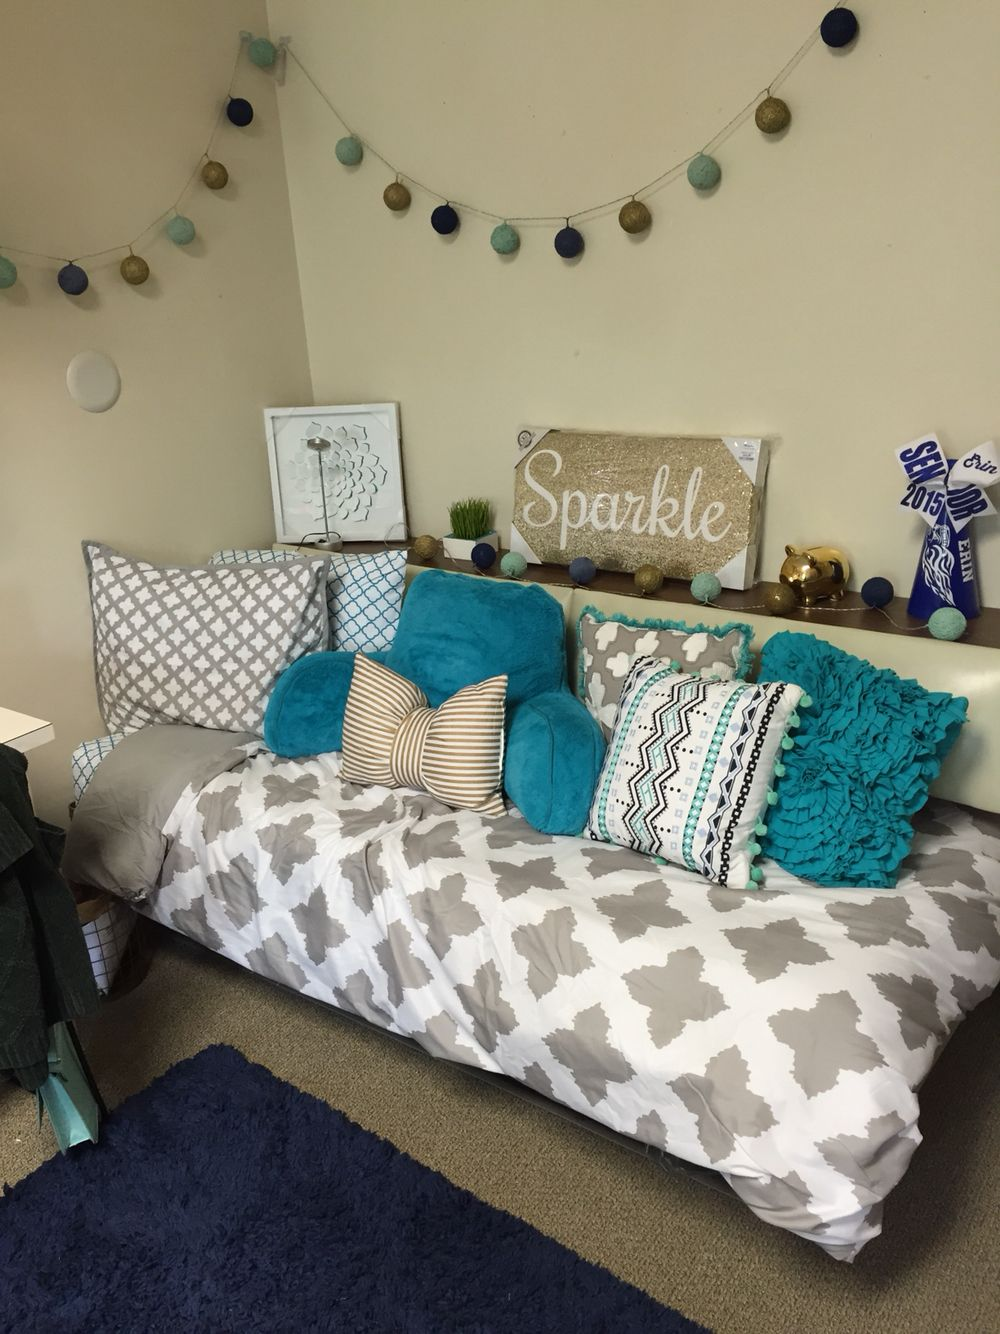 grey teal dorm room with navy, mint, & gold accents